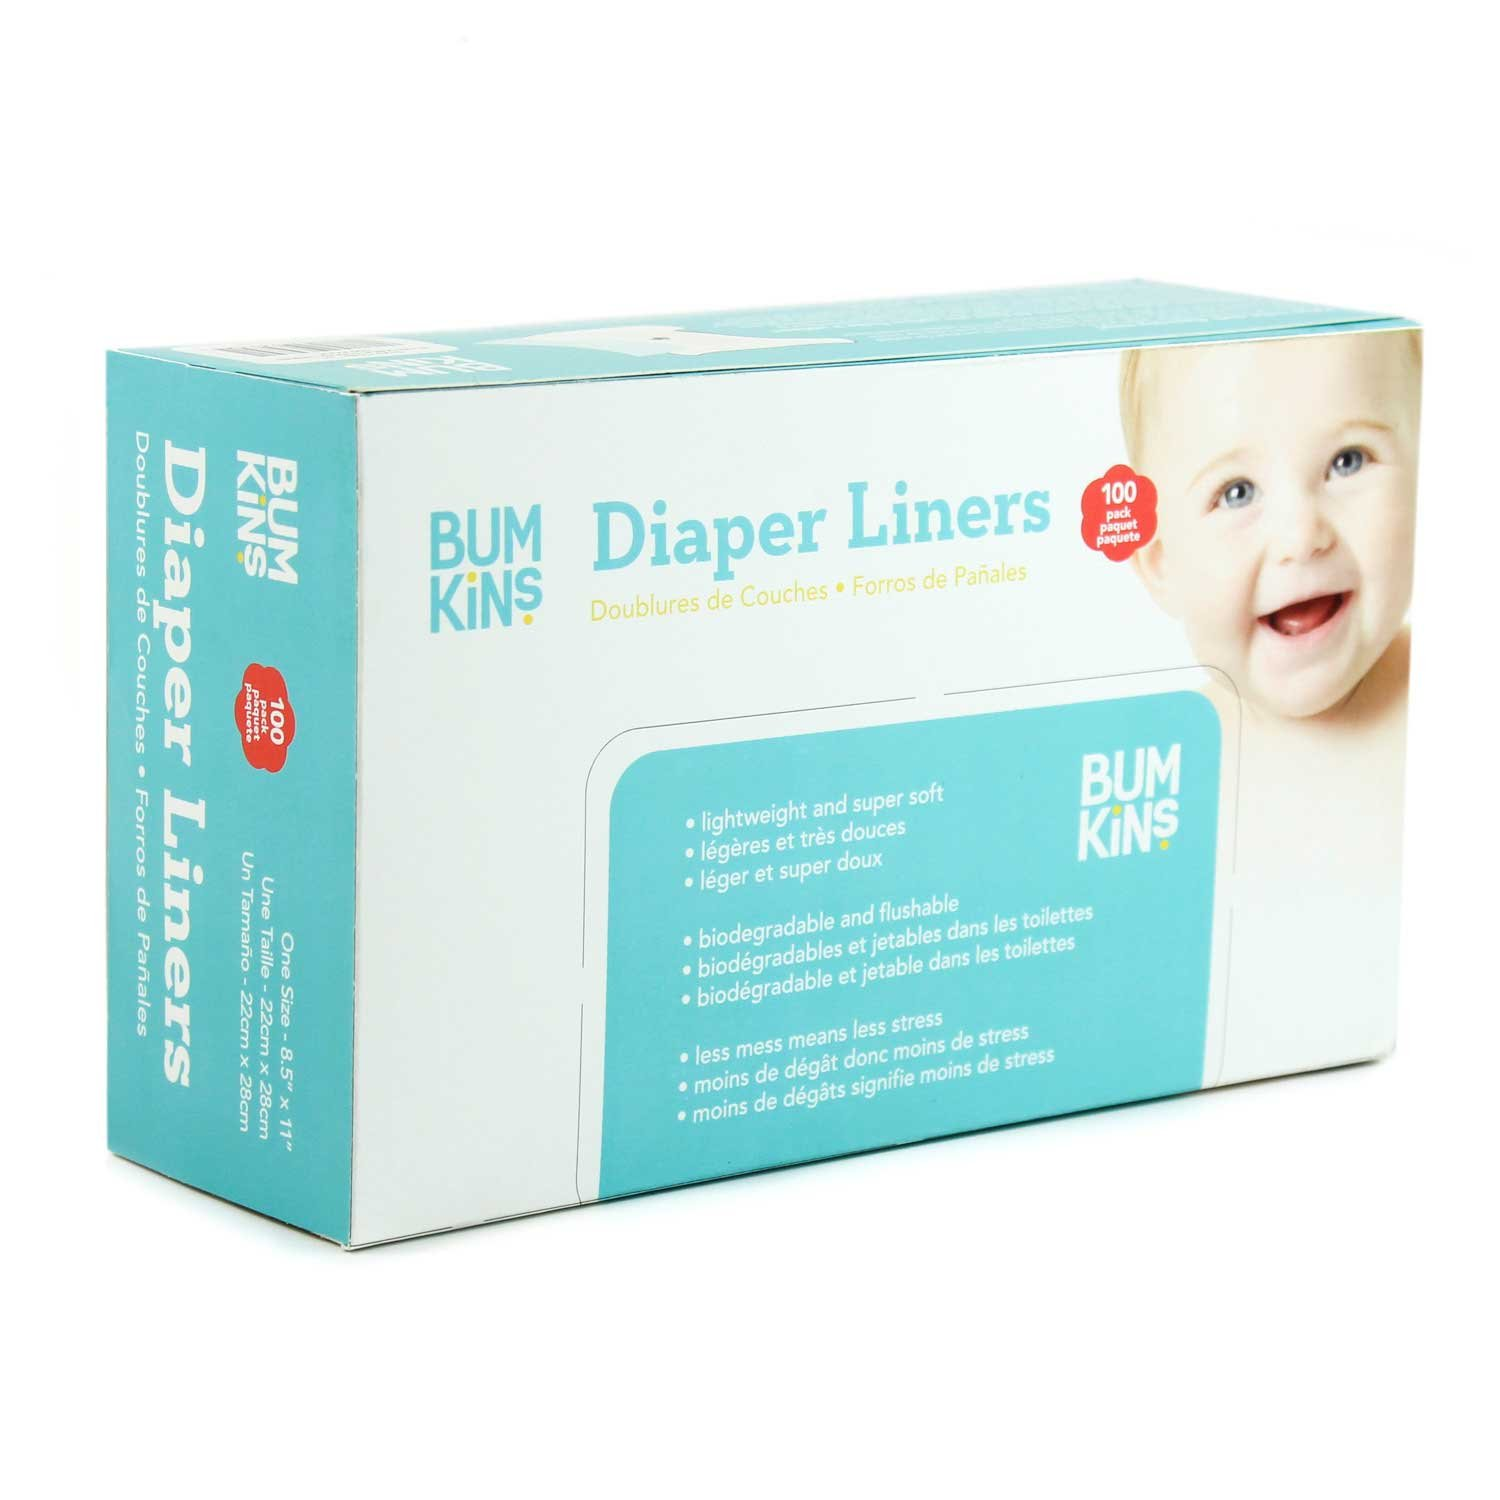 Bumkins Flushable Biodegradable Cloth Diaper Liner, Neutral, 100 Count, (Pack of 1) DLW